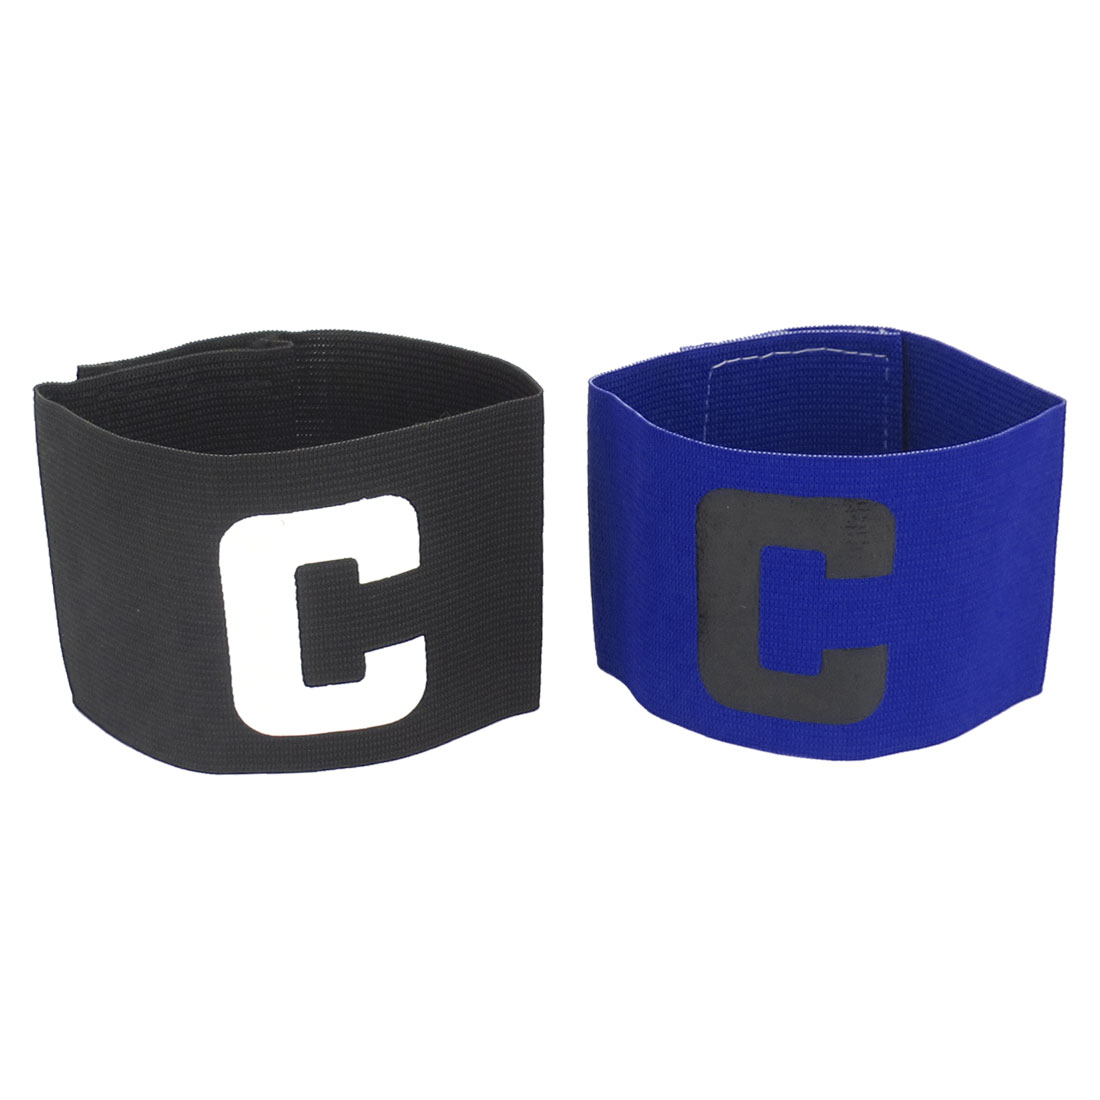 C Printed Stretchy Football Tension Soccer Match Player Captain Armband Black Blue 2pcs